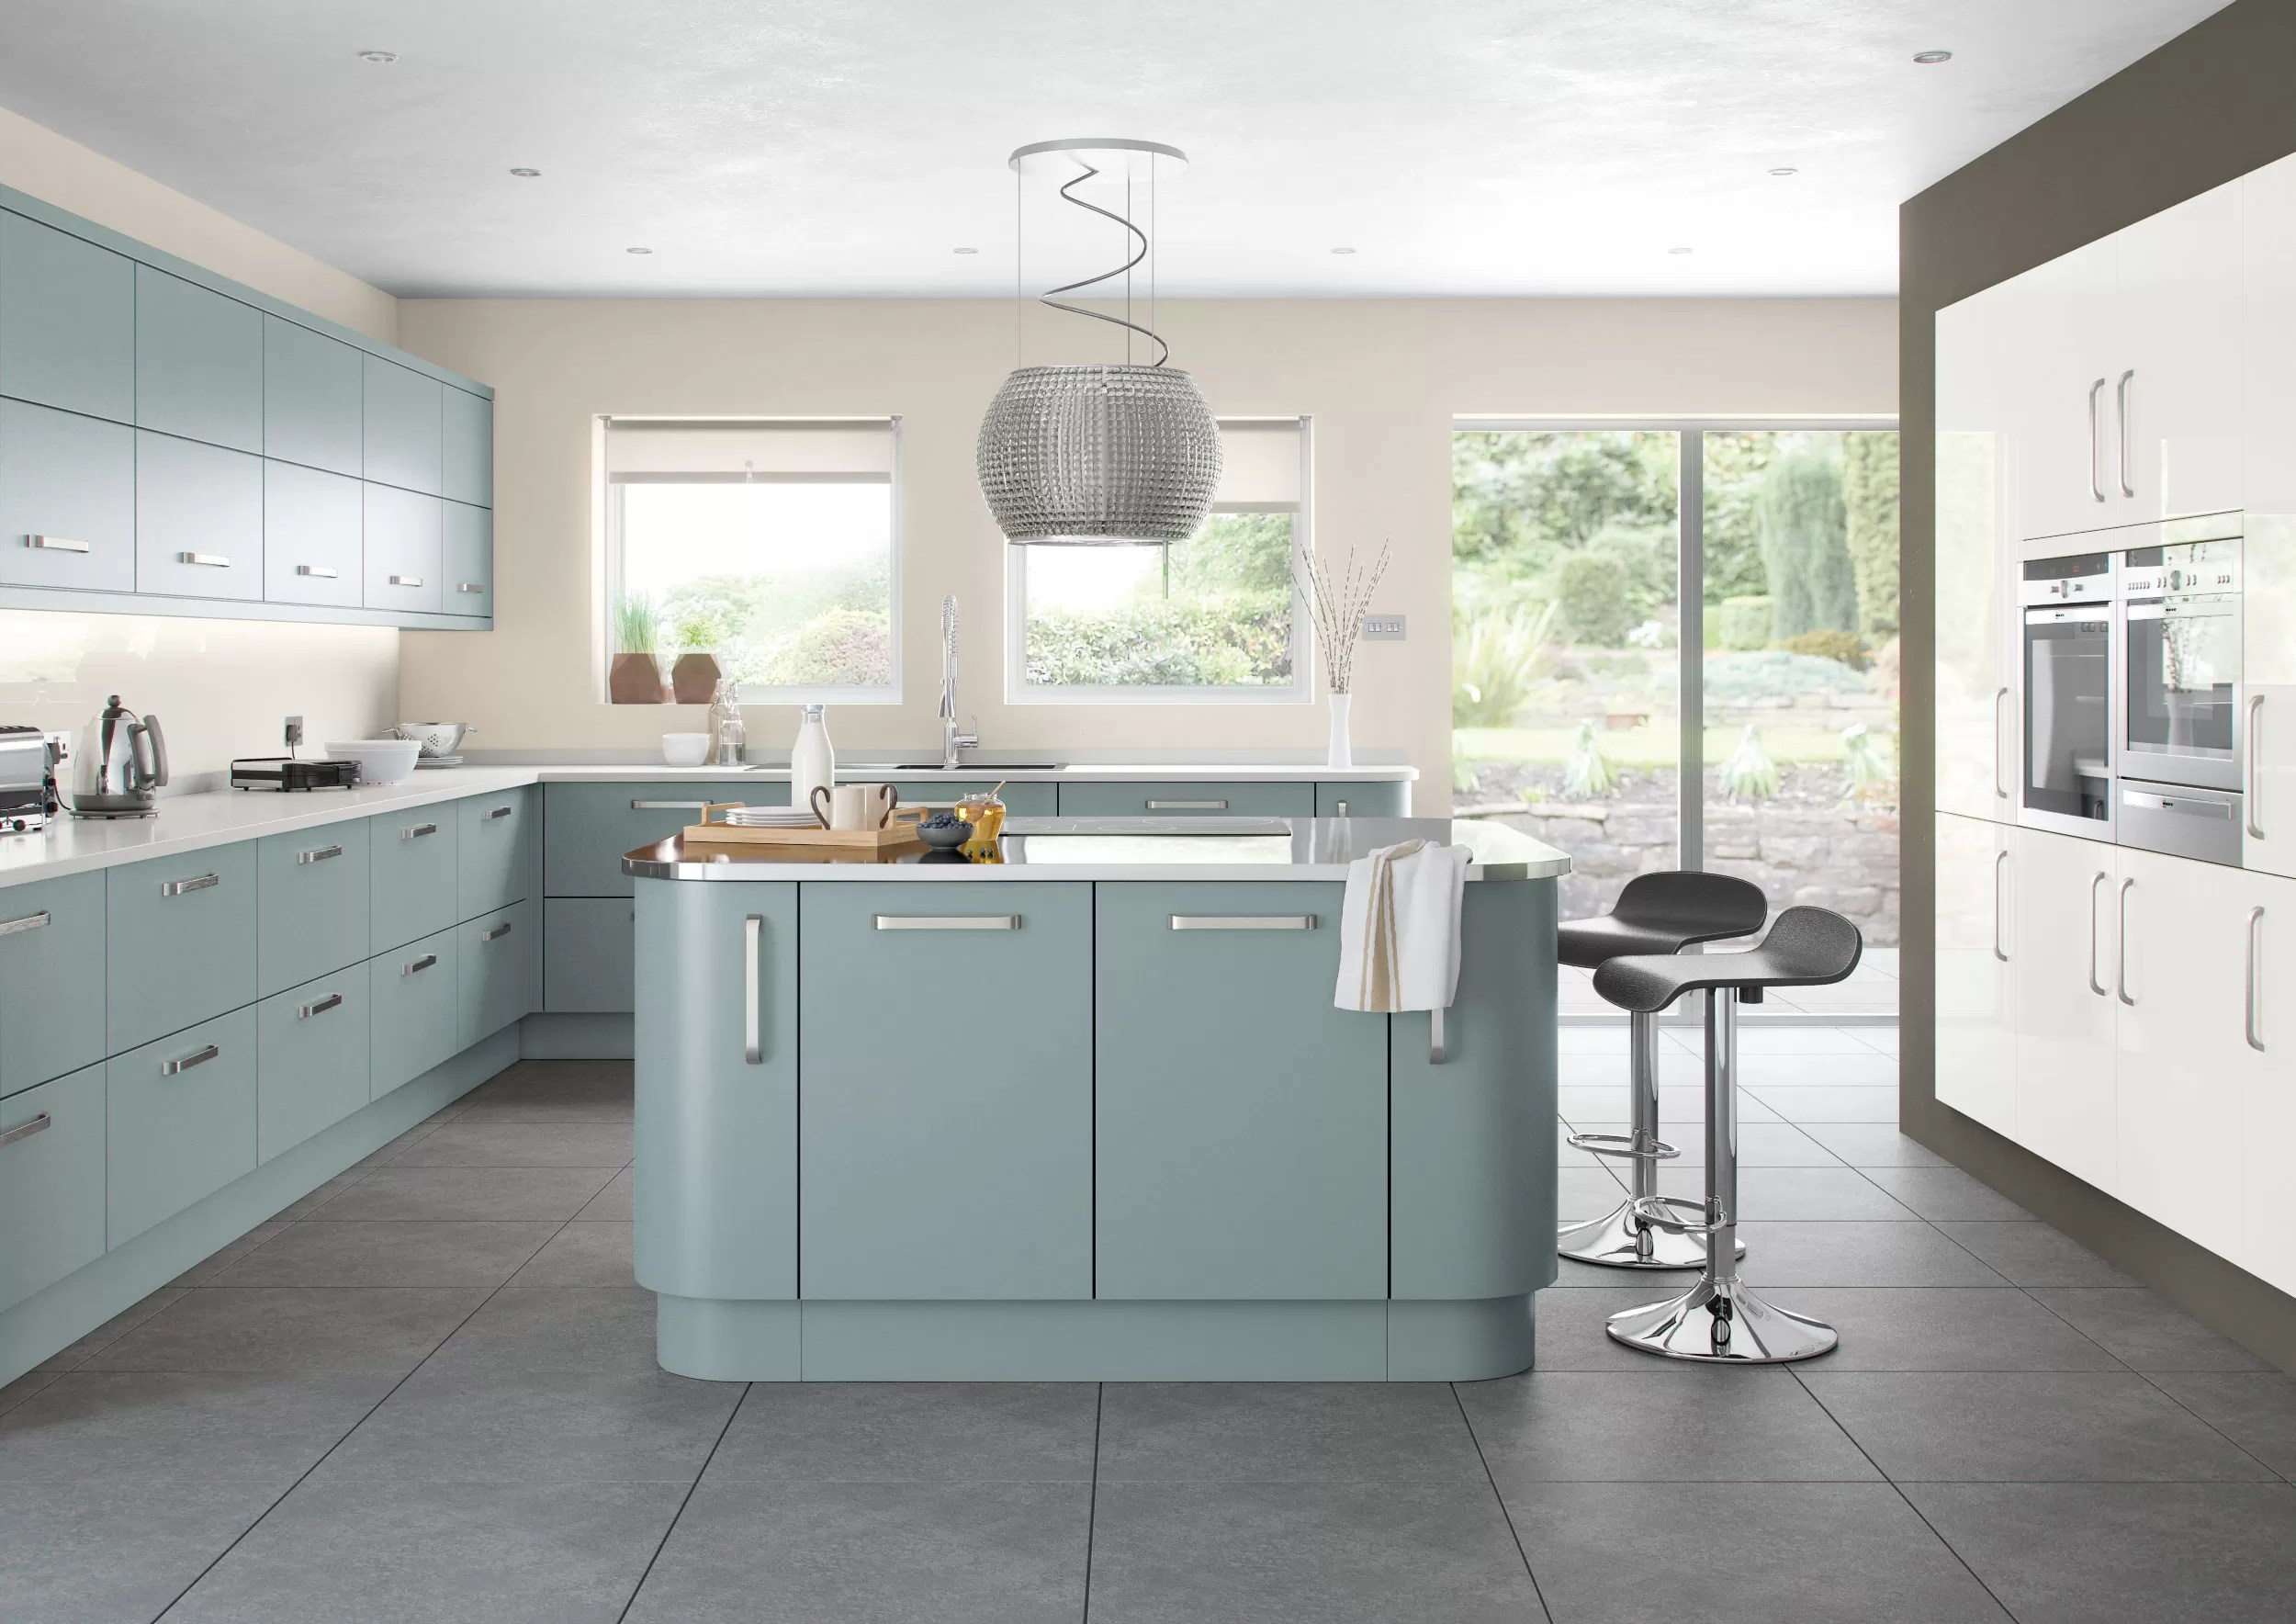 Proline Cabinets Ltd - Trade Kitchen Manufacturers